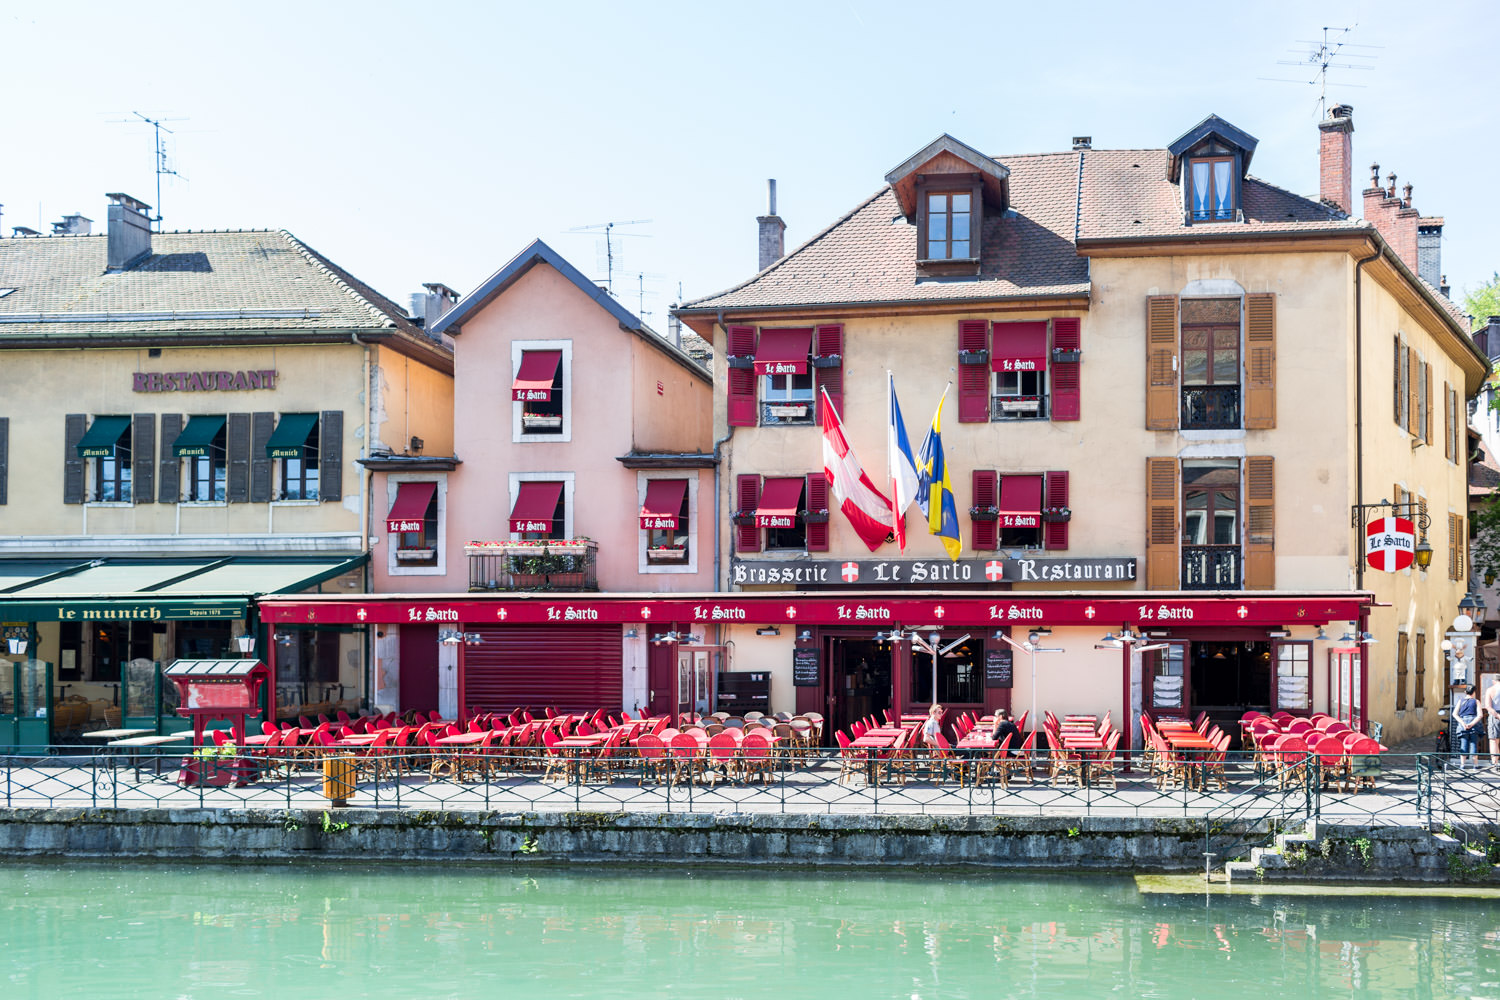 Annecy France canal and buildings, Cavin Elizabeth Photography